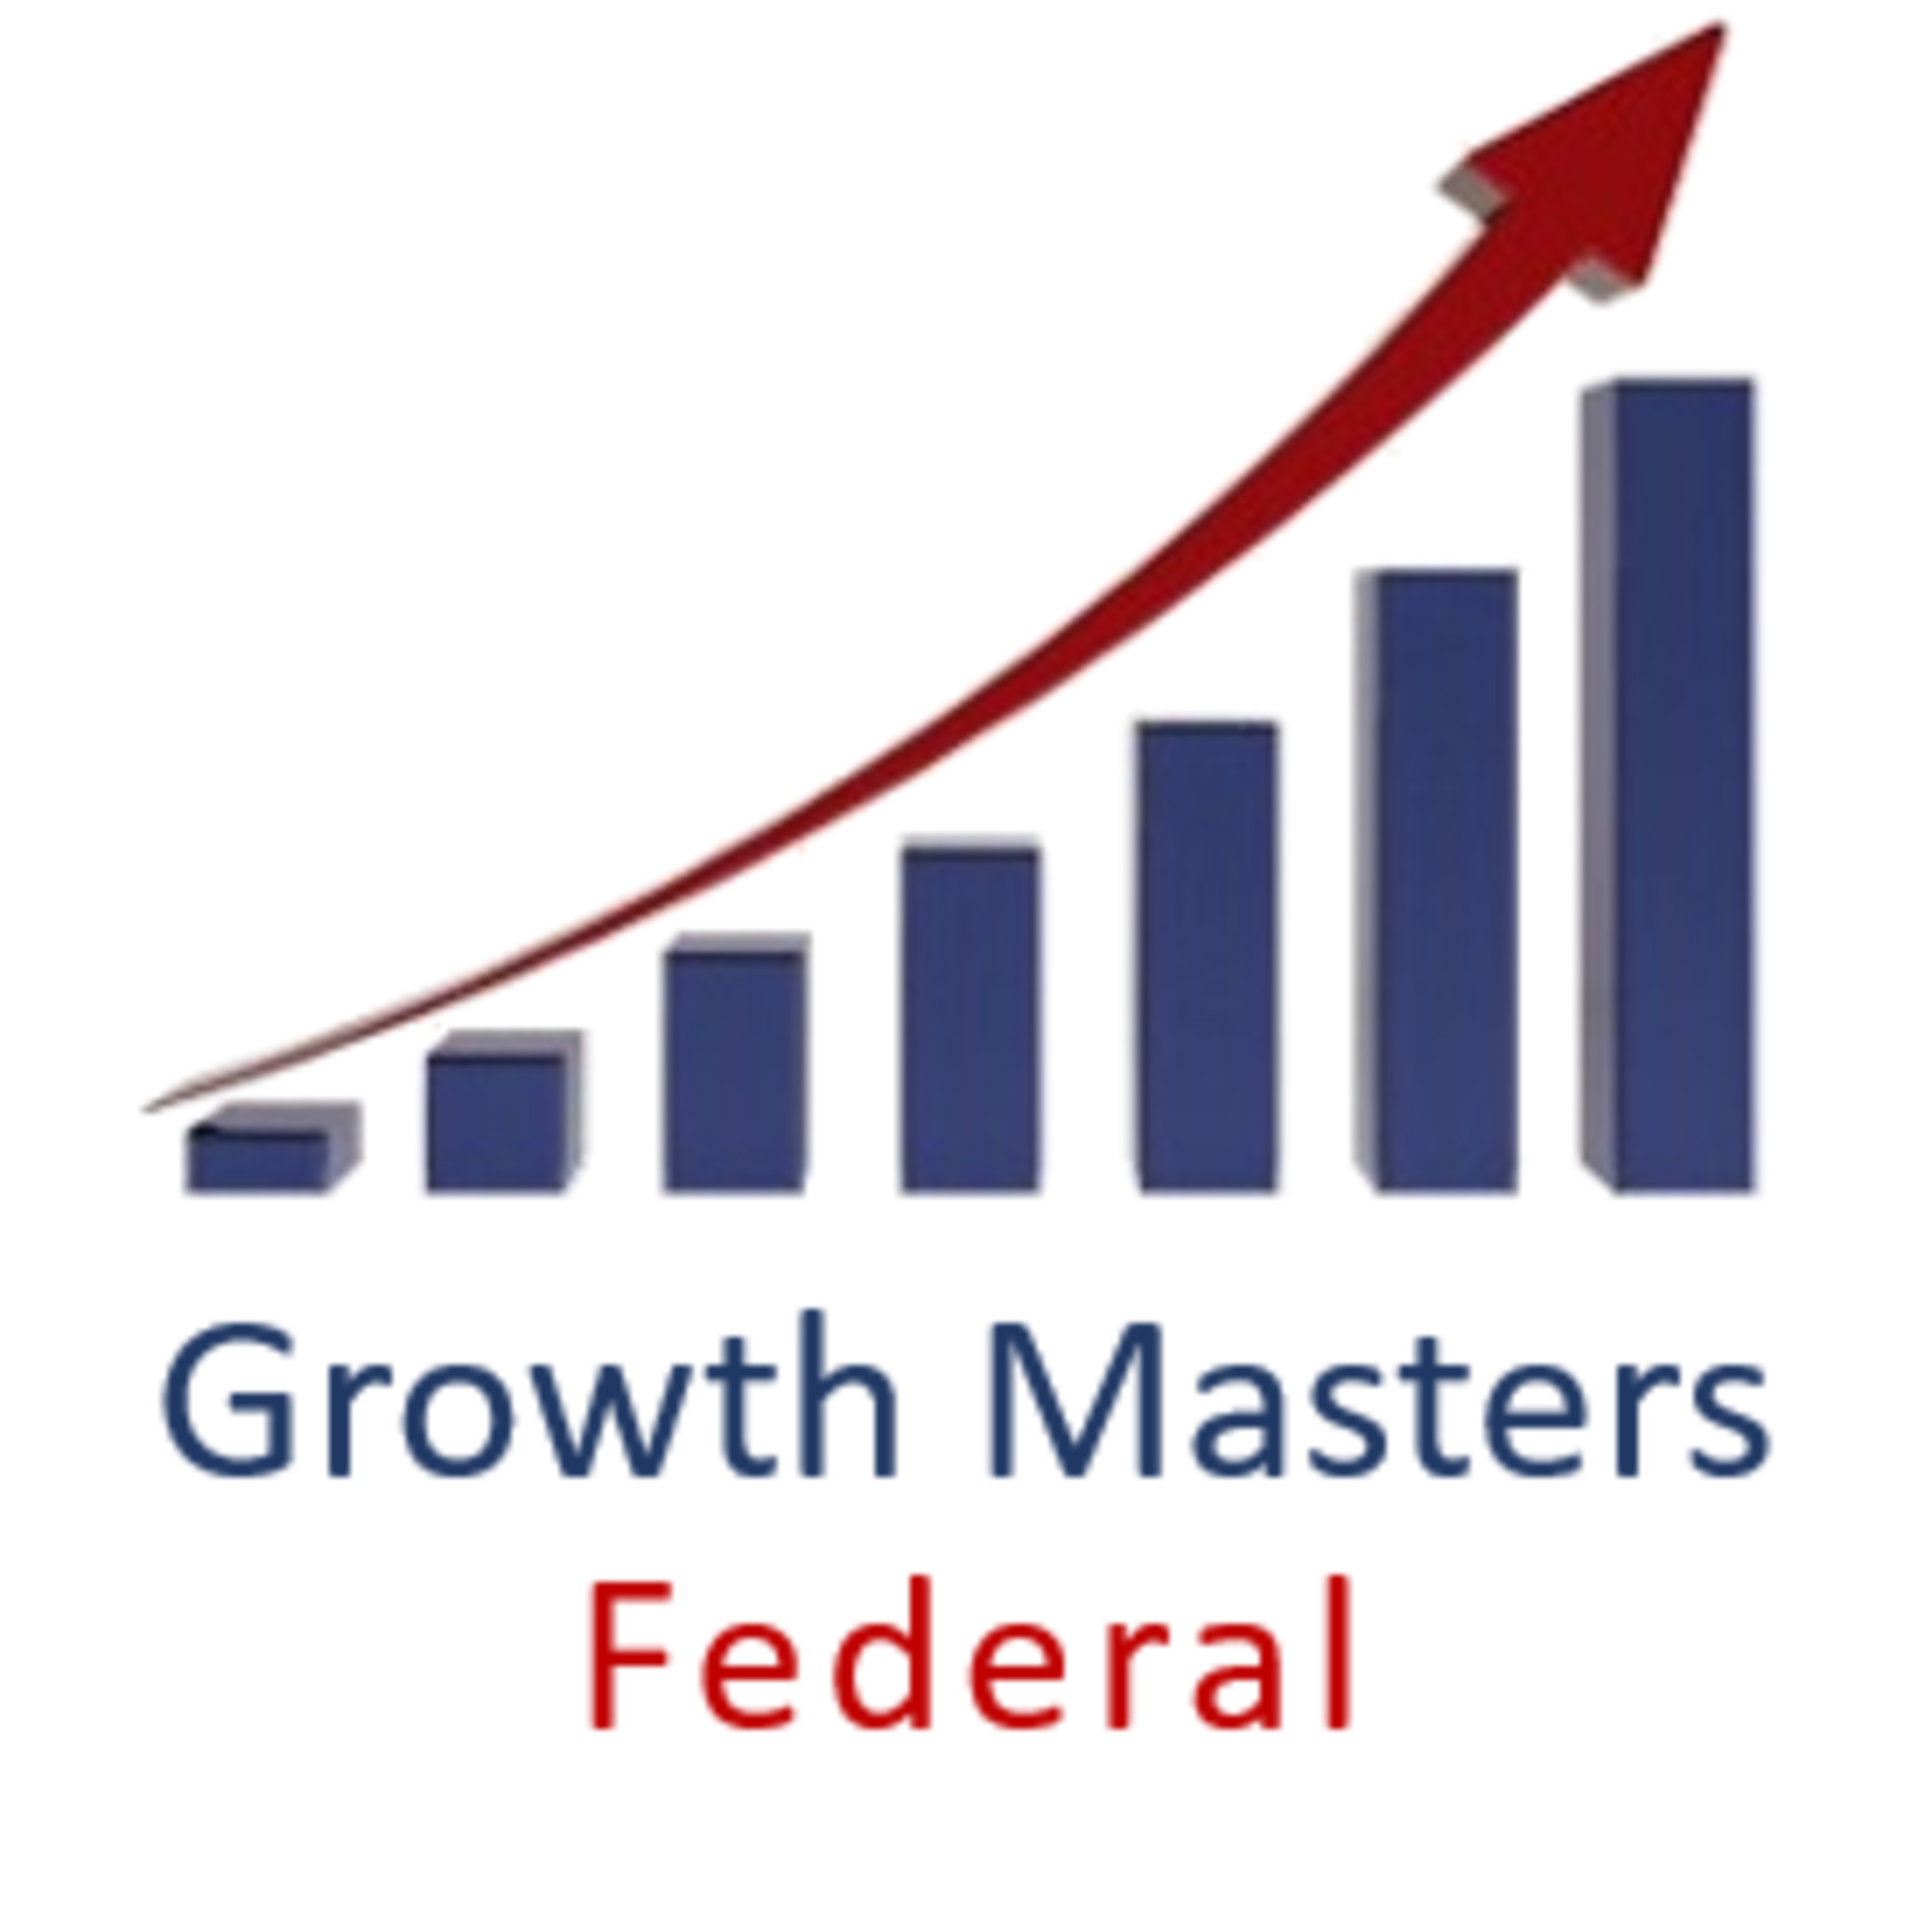 Growth Masters Federal: Thinking, Planning and Collaborating